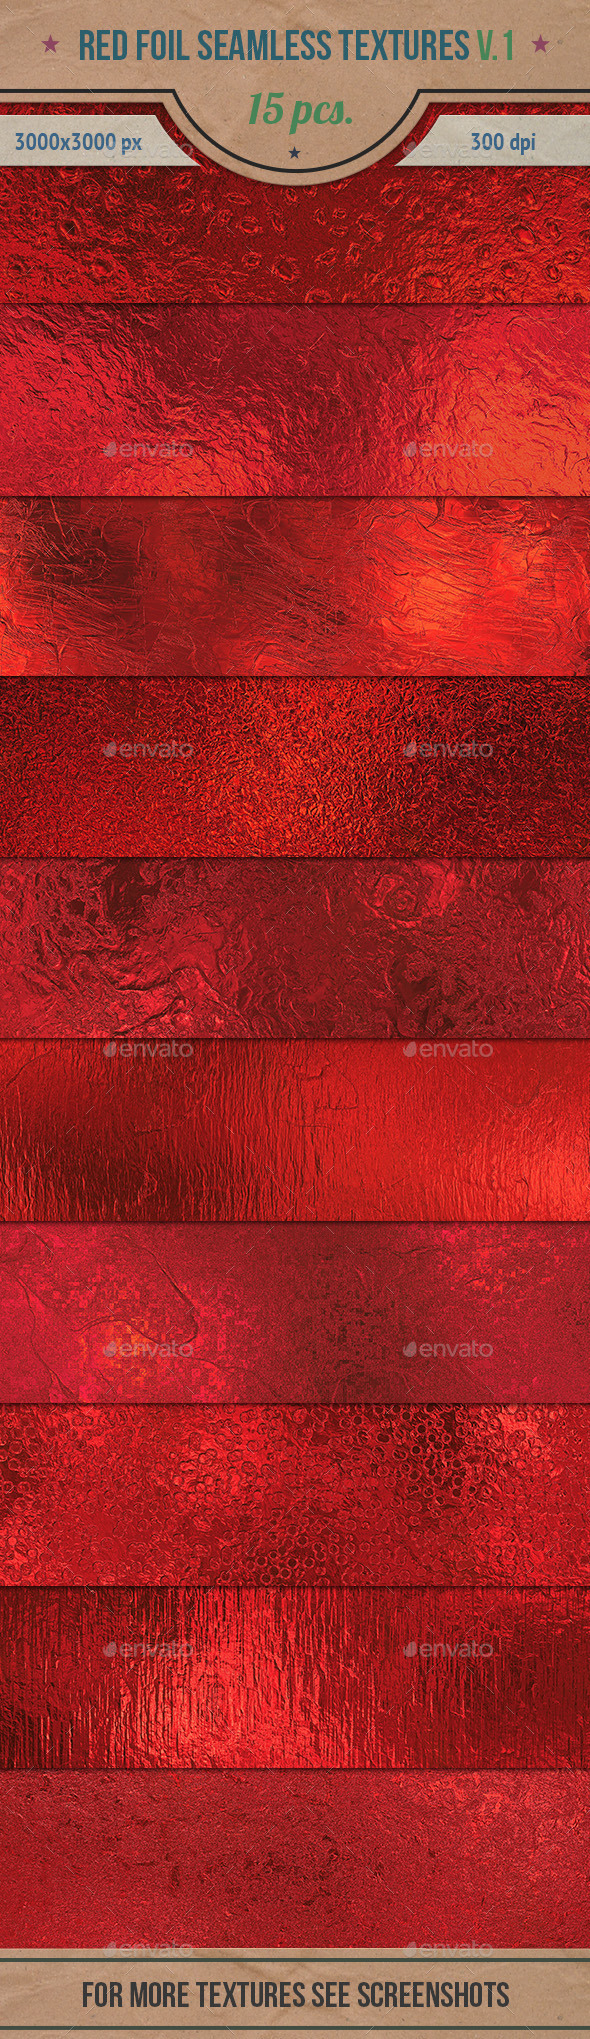 GraphicRiver Red Foil Seamless HD Textures Pack v.1 10784374